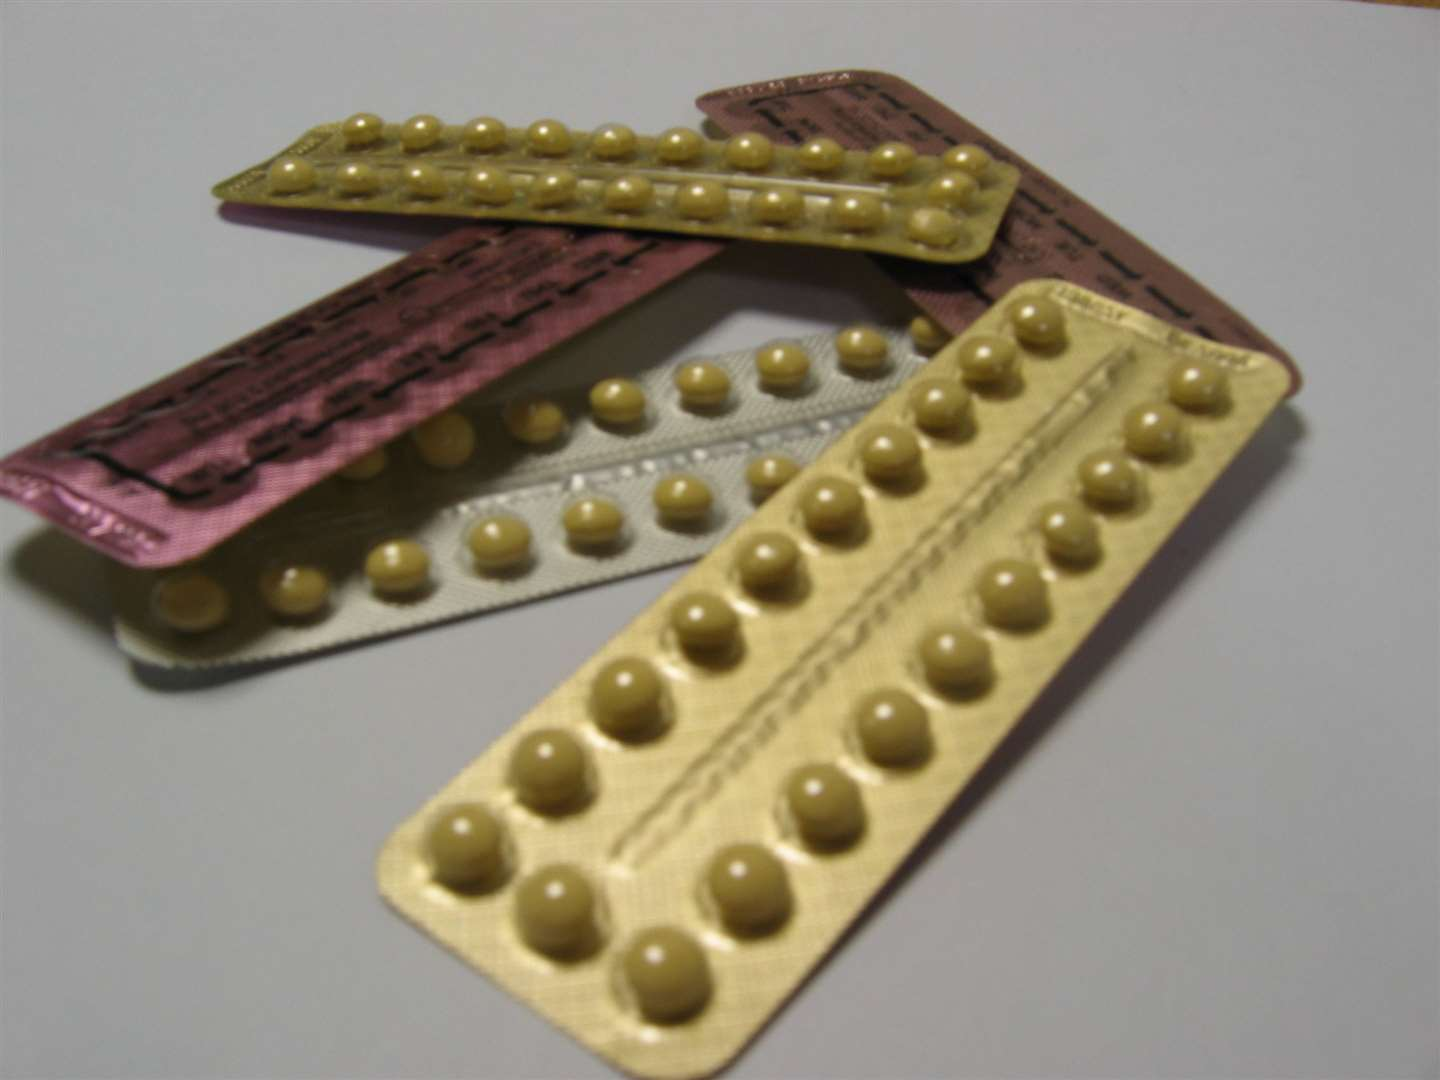 Blood clots are a recognised side effect of contraceptive pills